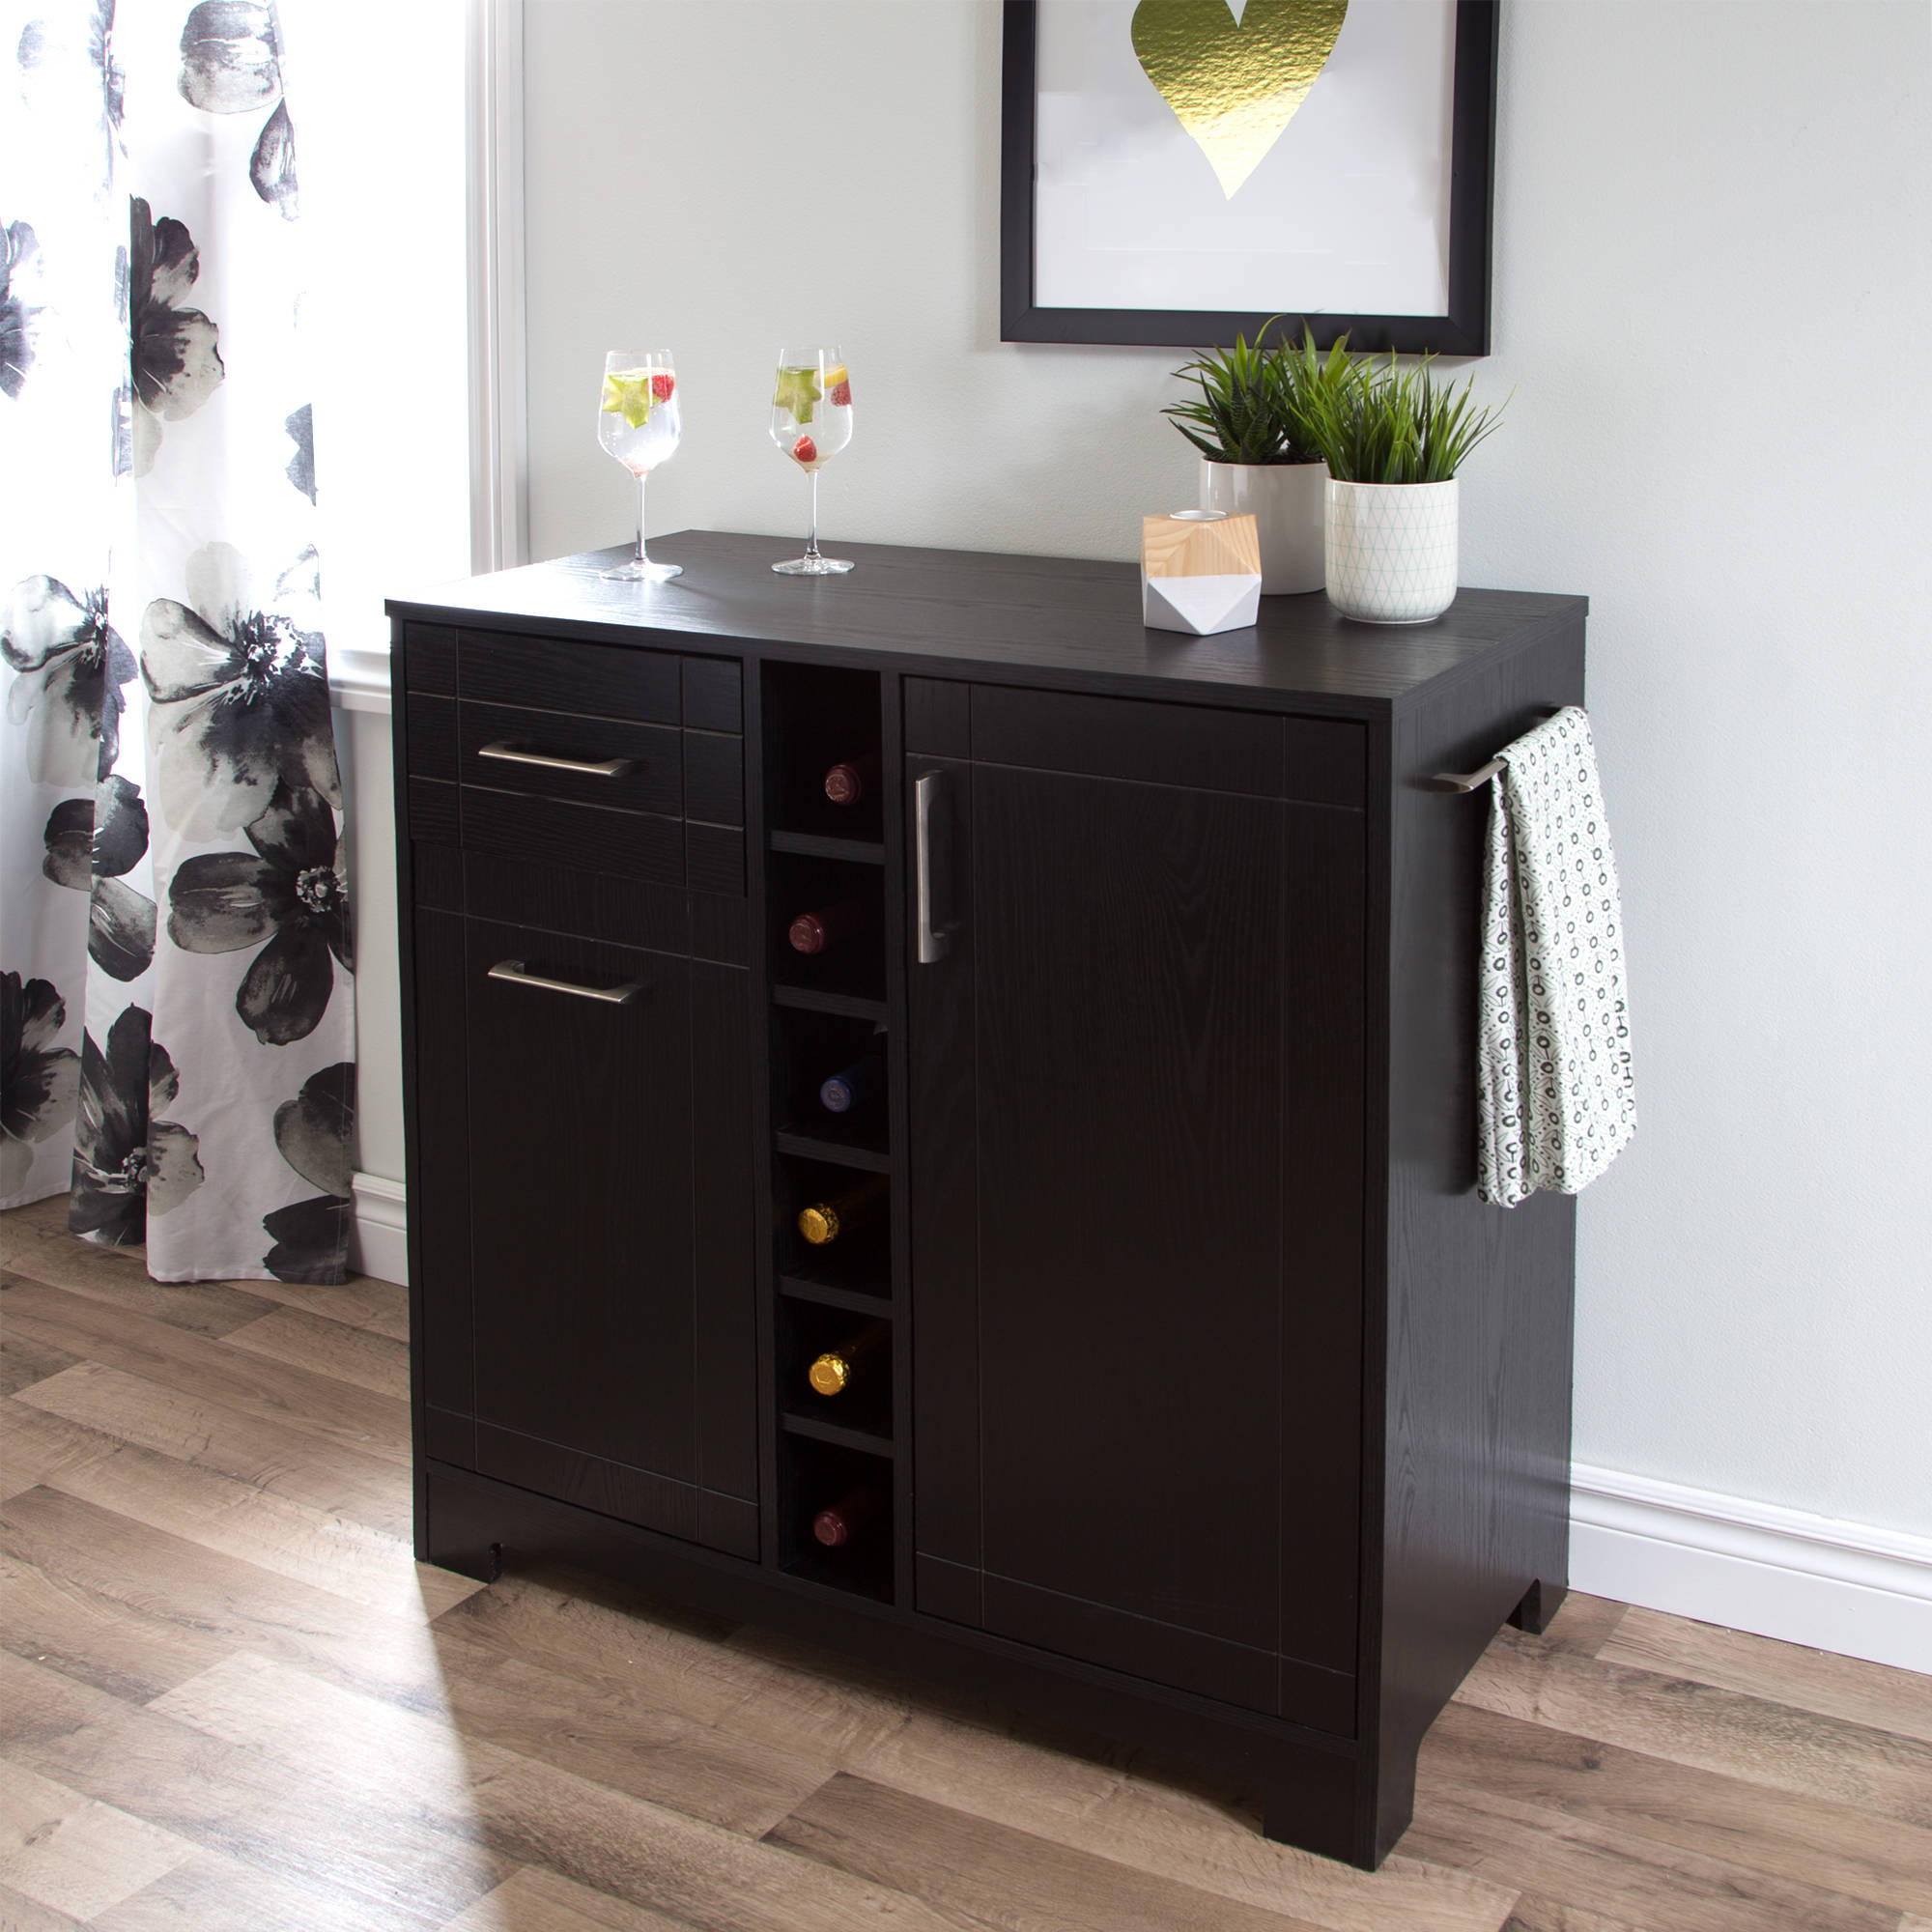 South Shore Vietti Bar Cabinet with Bottle and Glass Storage, Multiple Finishes